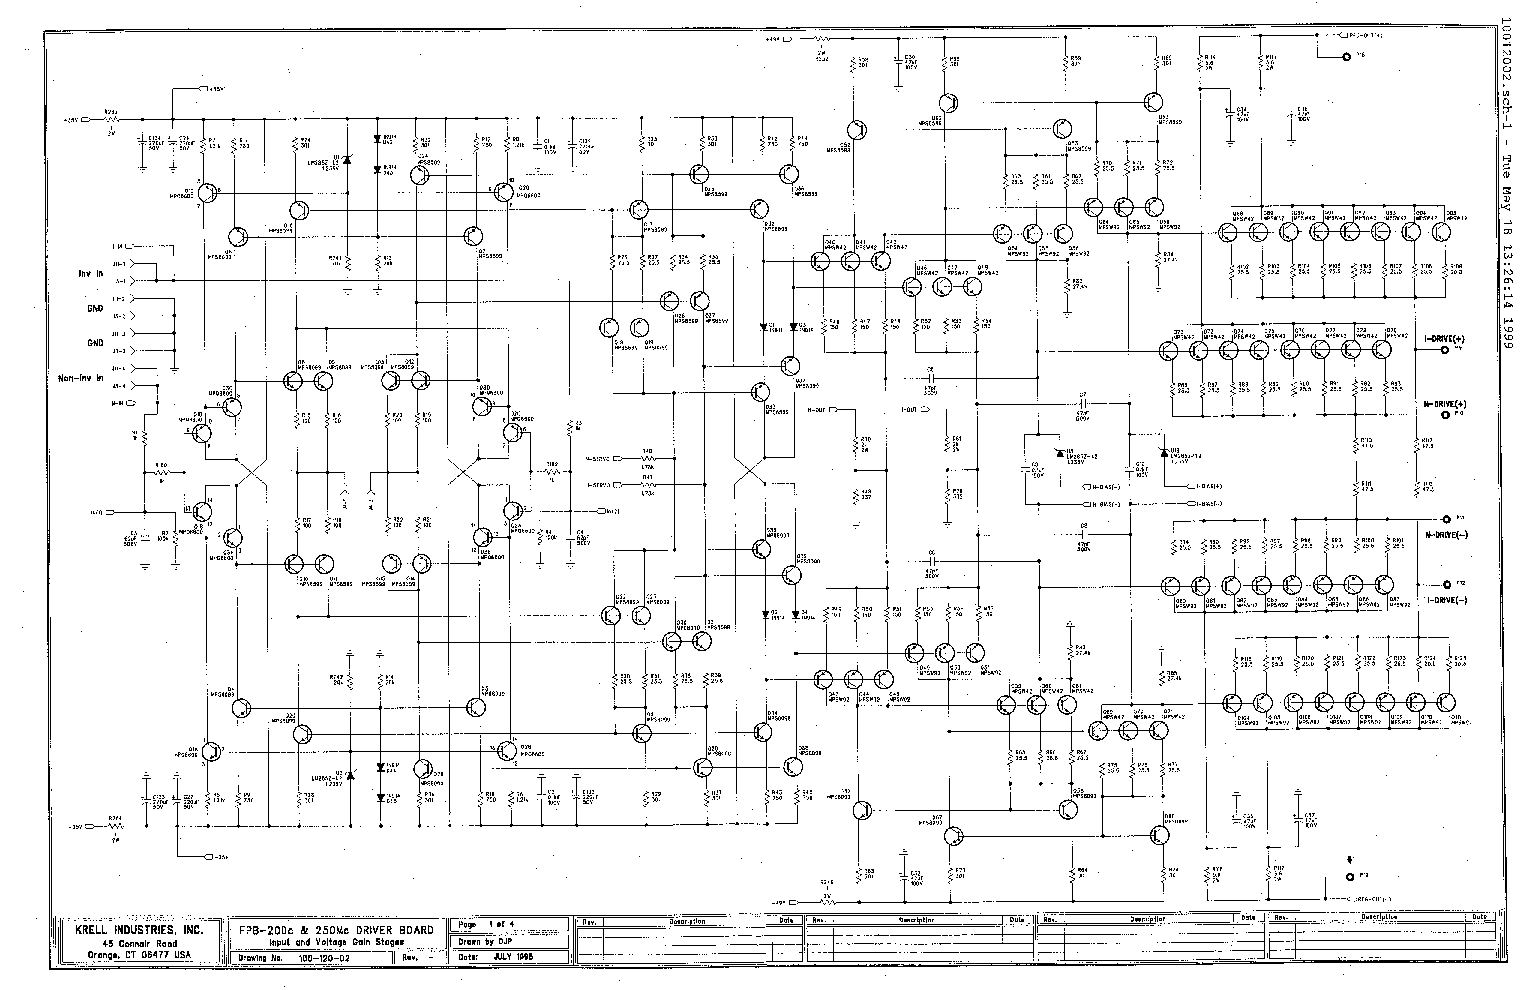 Ii Electrical Wiring Diagram Service Manual Free Download Schematics 1986 Fiat Uno Turbo And System Circuit Amplifier Pdf Diagrams U2022 Rh Seniorlivinguniversity Co